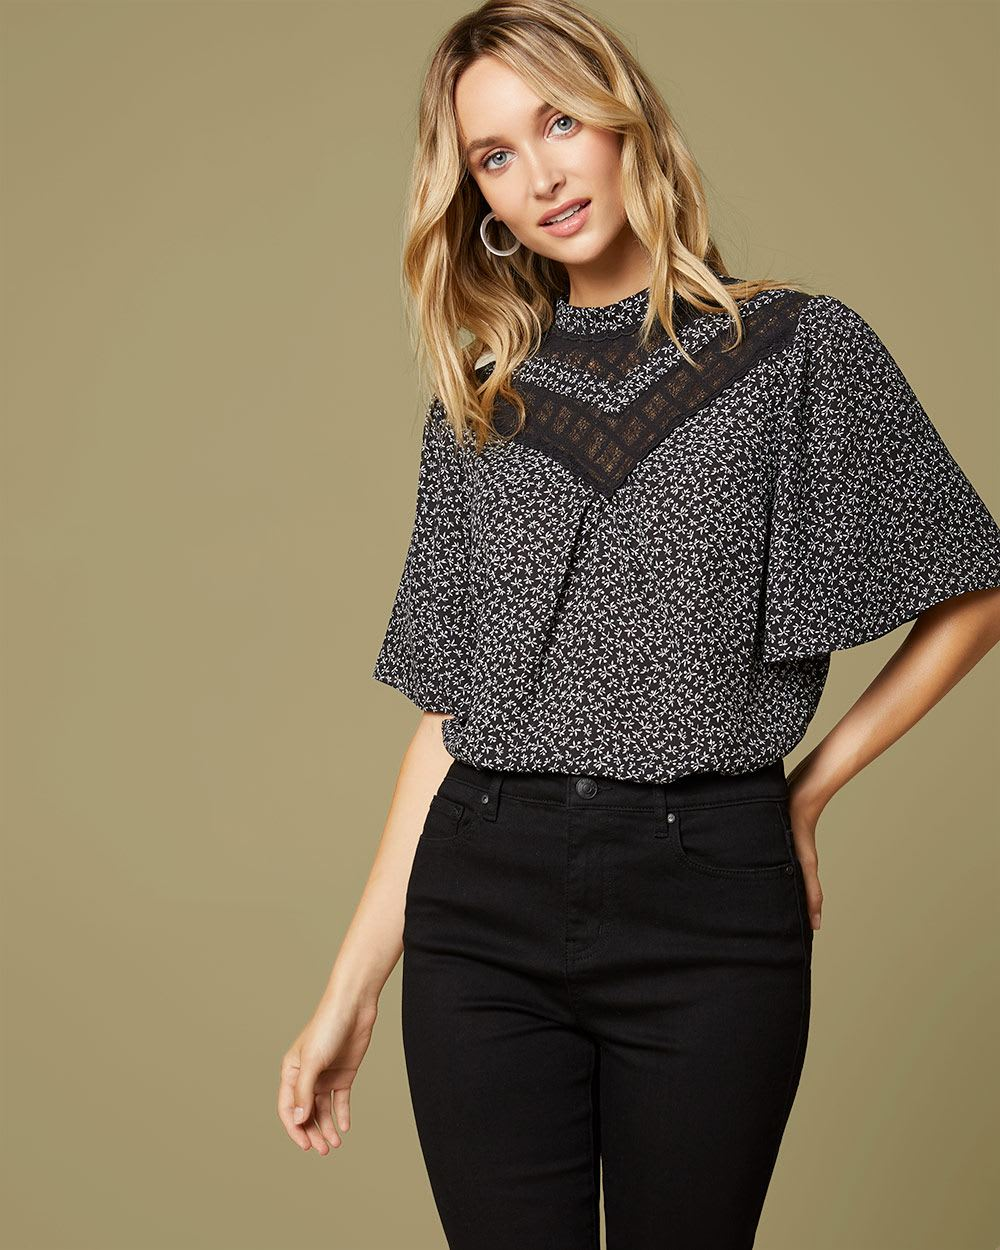 Lace-trimmed mock-neck printed blouse